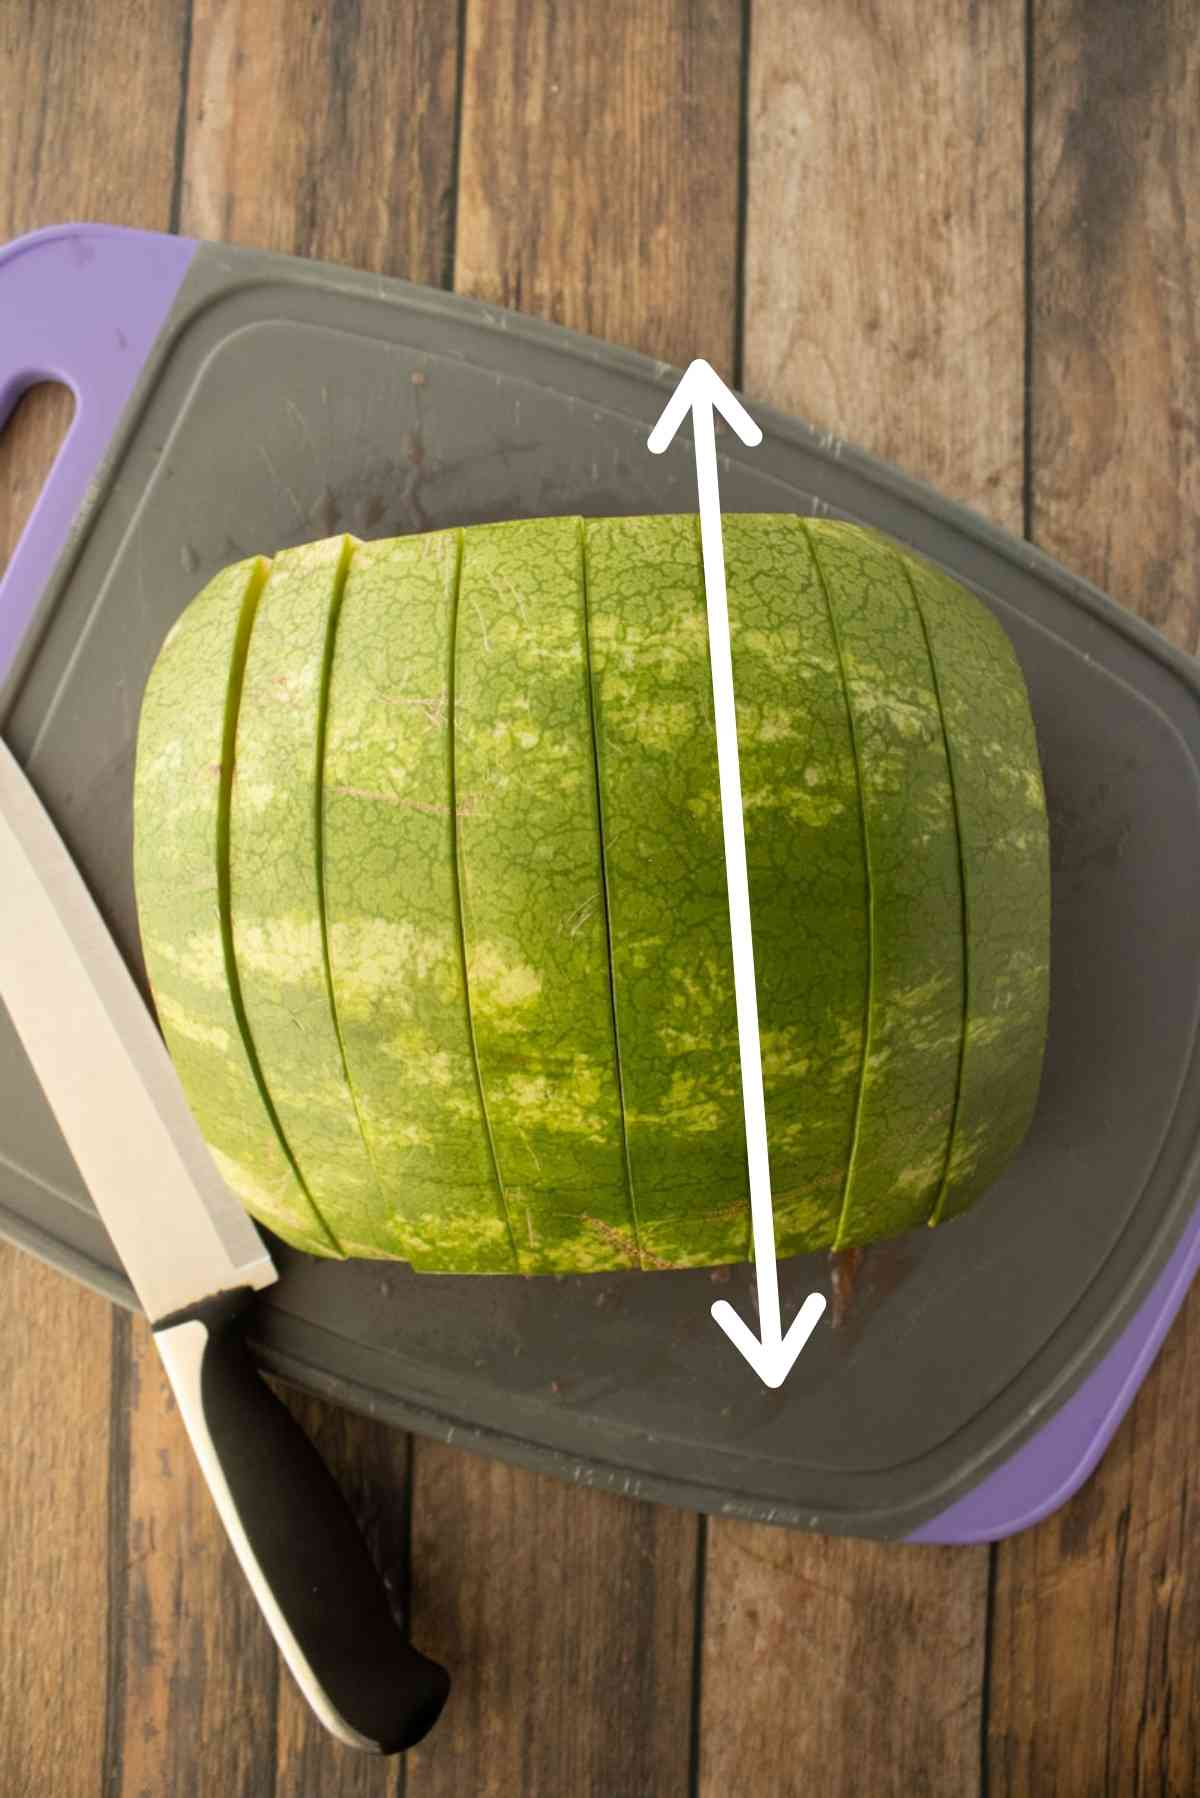 Cut the watermelon in vertical slices.